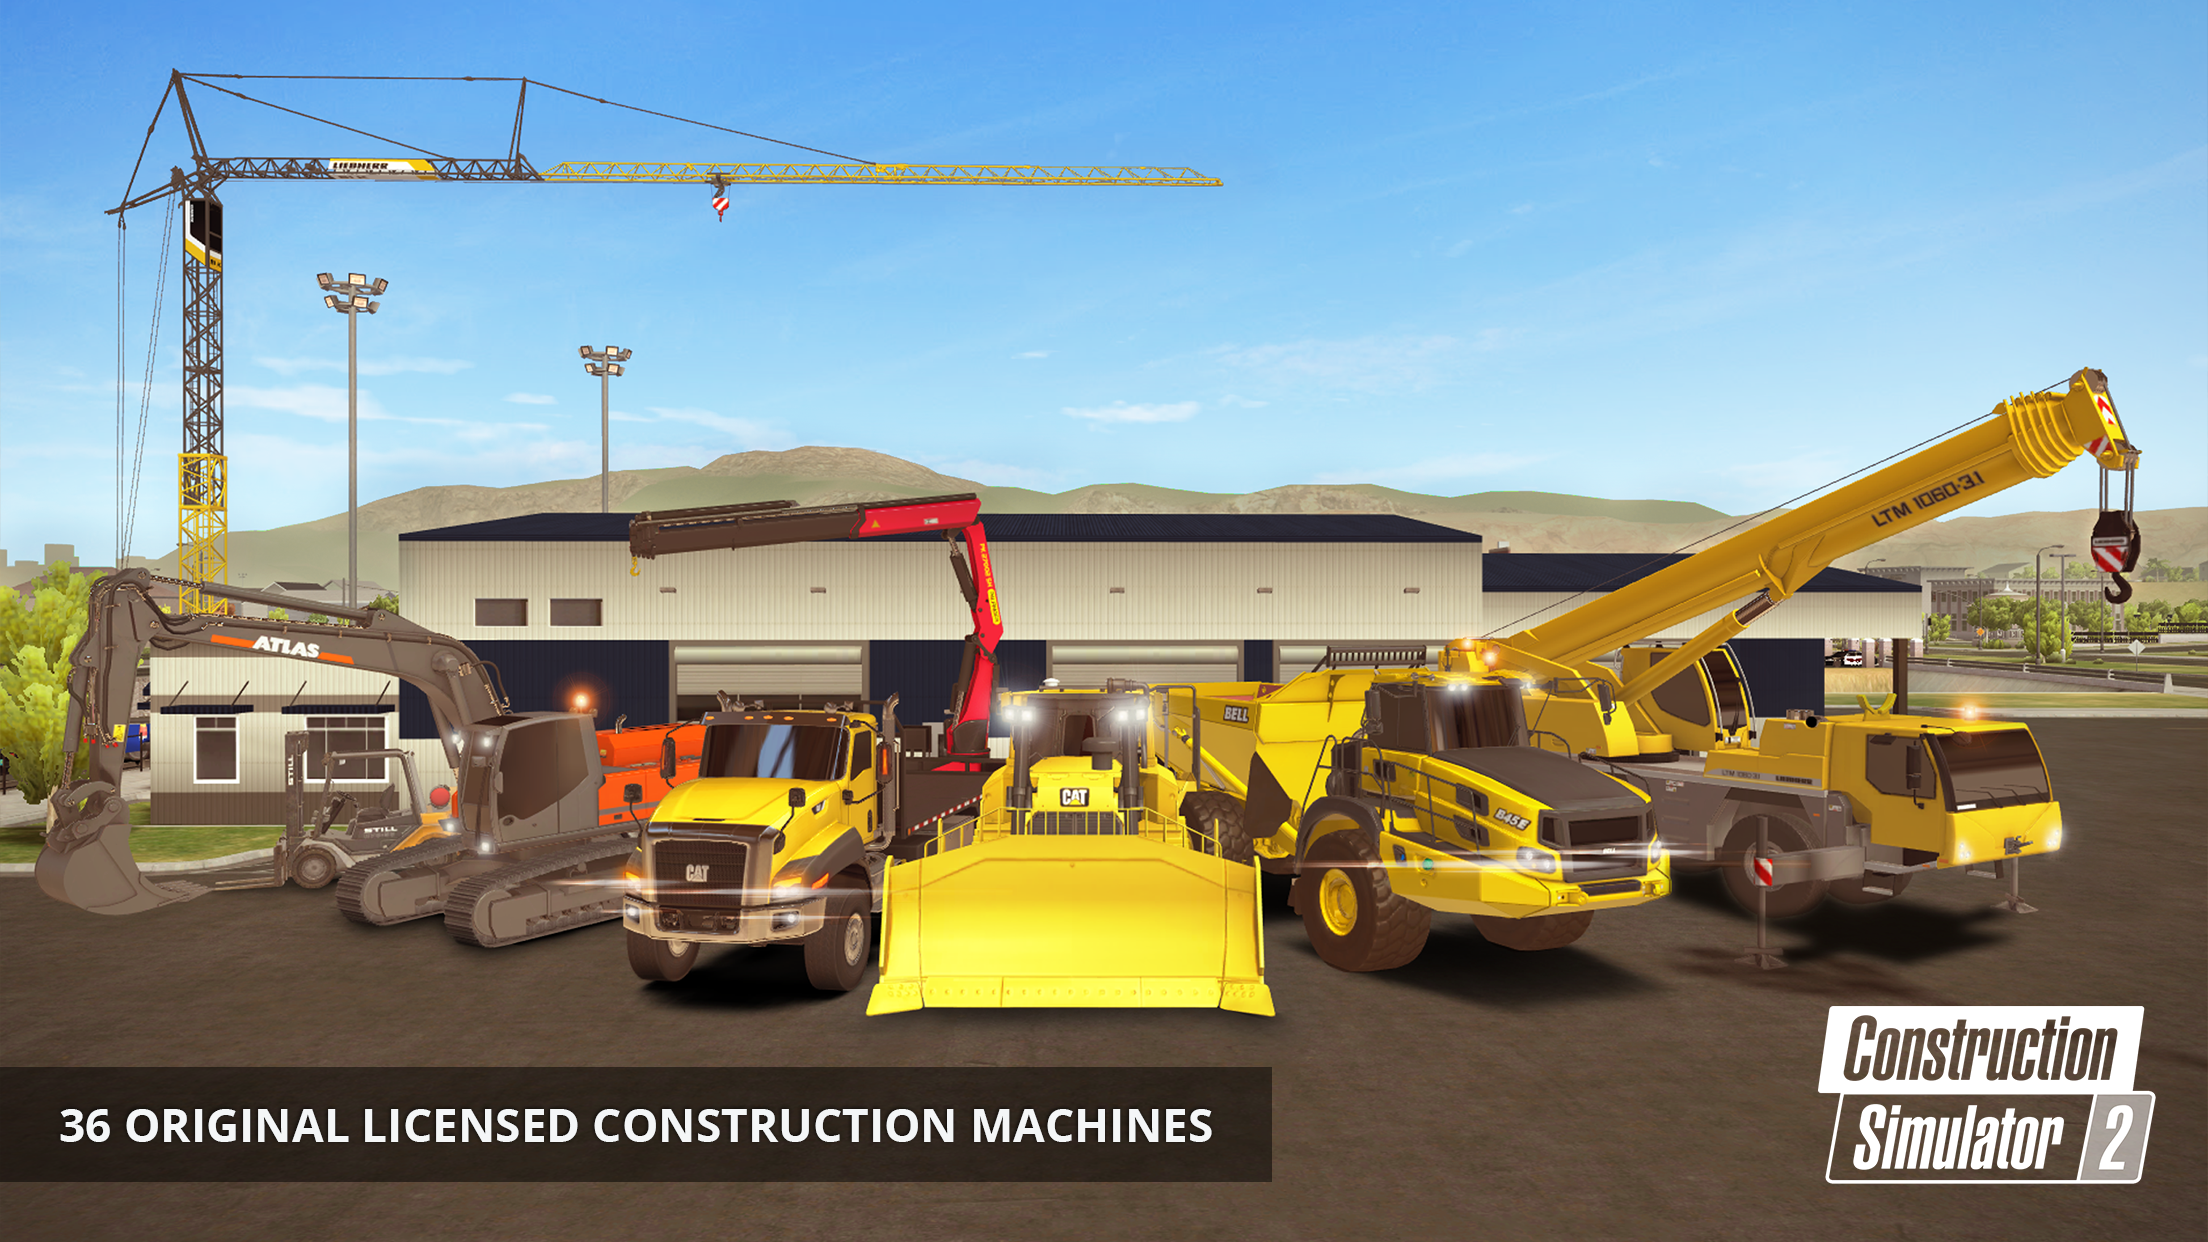 Construction Simulator 2 trucks its way onto iOS and Android